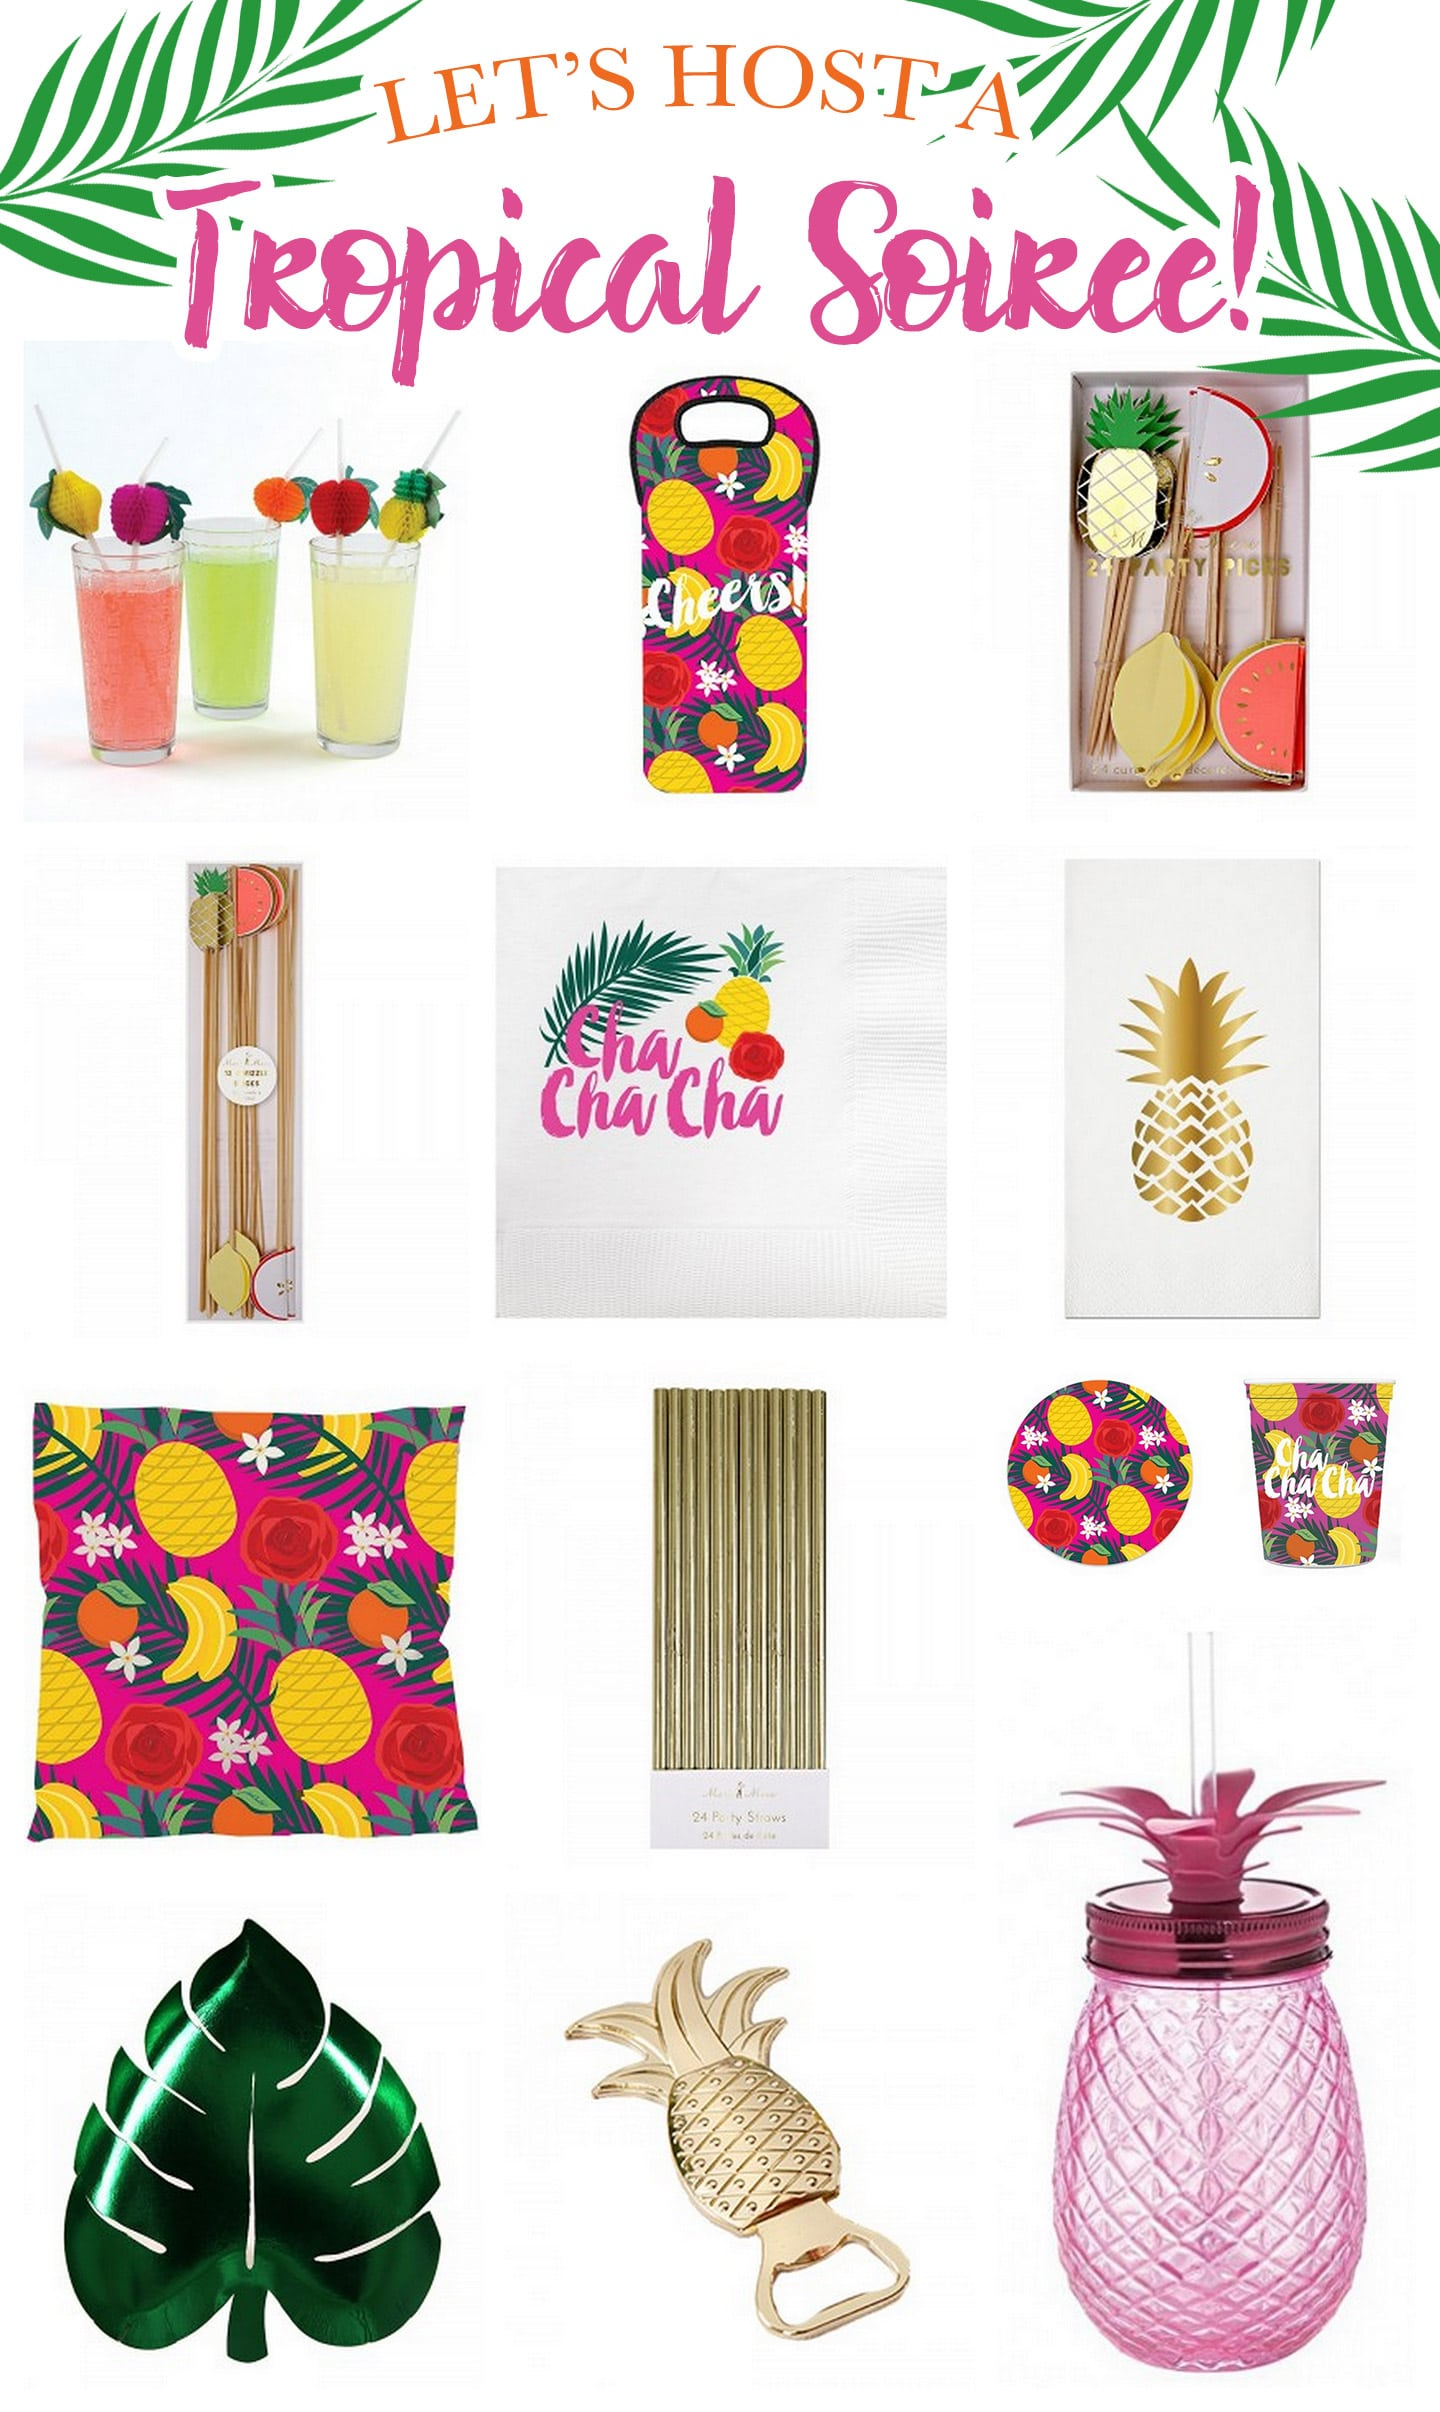 Host a Tropical Soiree!